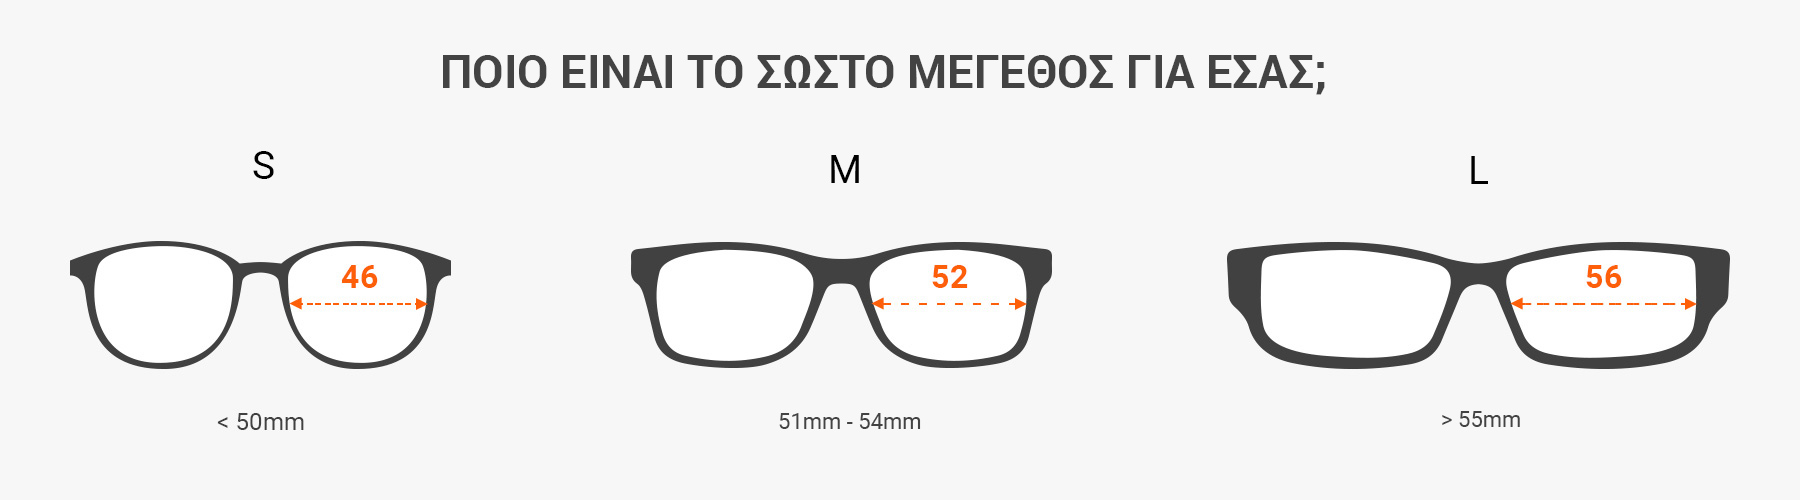 how to read sunglasses measurements - Measure sunglasses size with a ruler